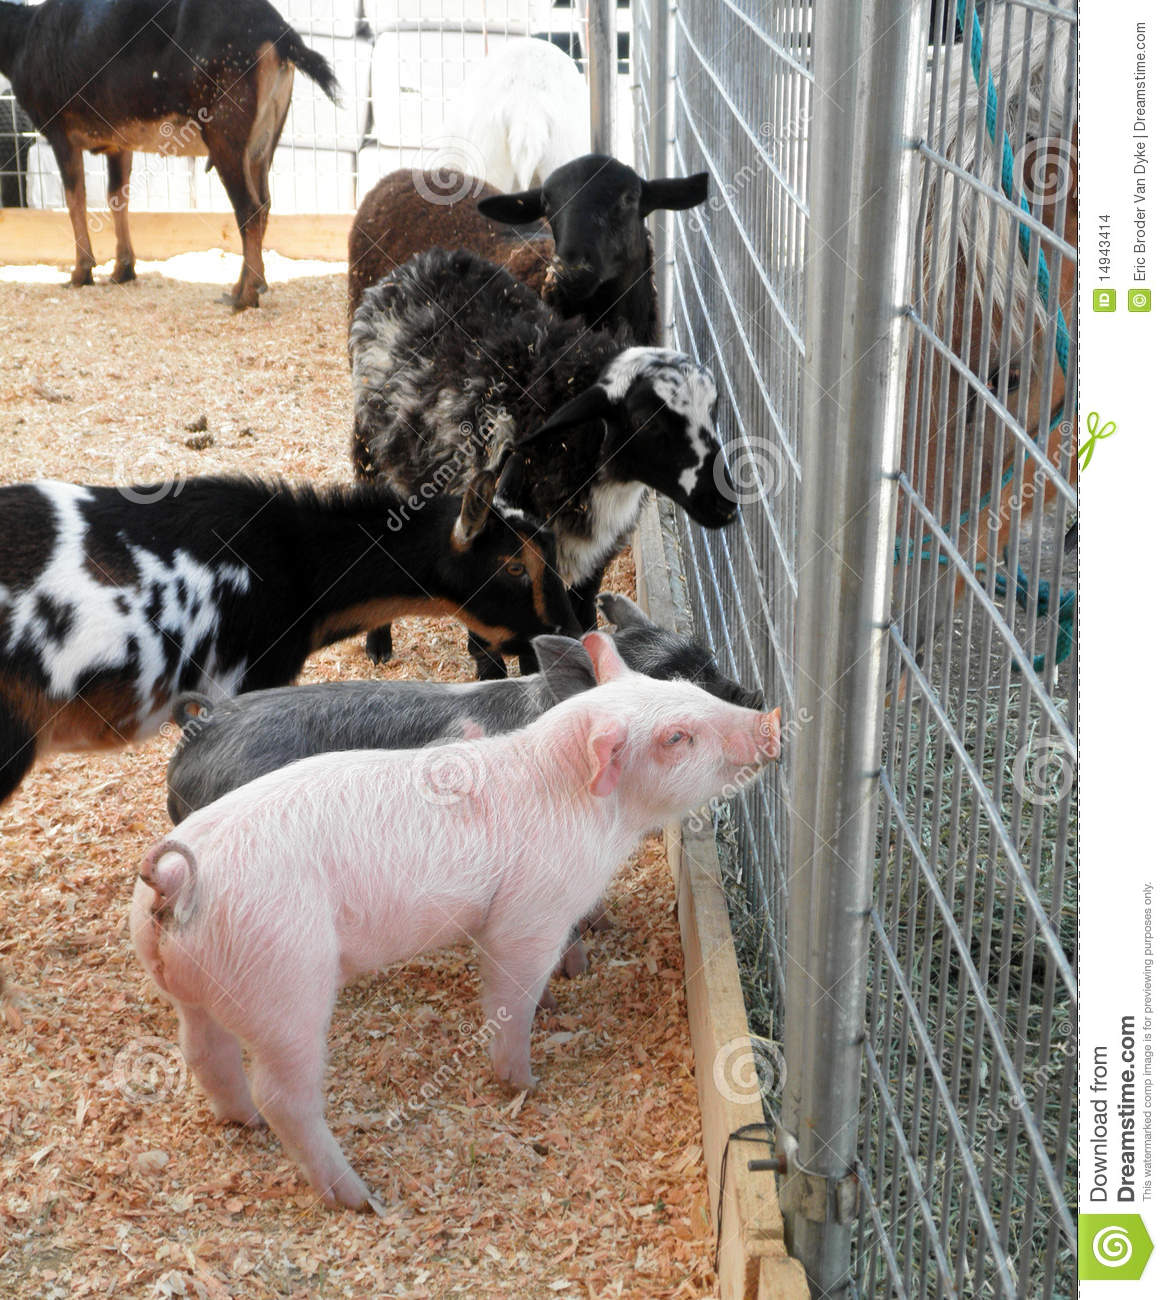 Baby pigs, goats and sheeps ask a horse for advice